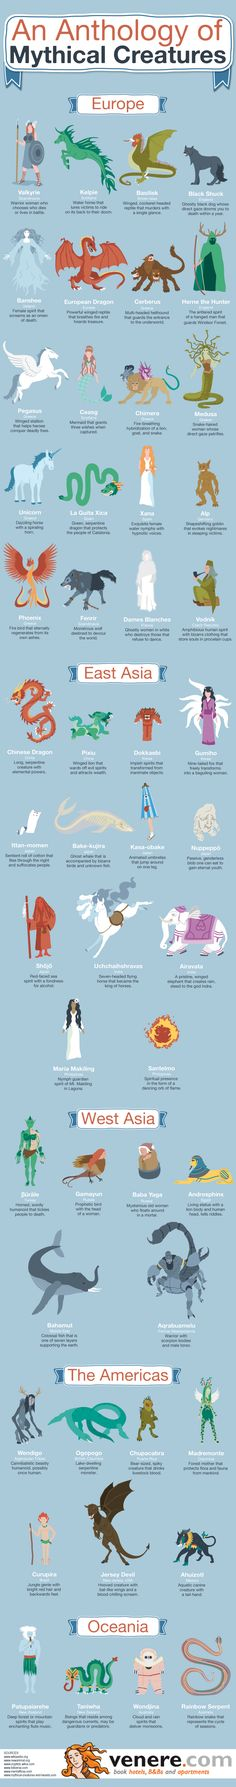 Mythology + Religion: An Anthology of Mythological Creatures Infographic Story Inspiration, Writing Inspiration, Legendary Creature, Mythological Creatures, Mythological Monsters, Greek Mythology, Japanese Mythology, Japanese Folklore, Egyptian Mythology